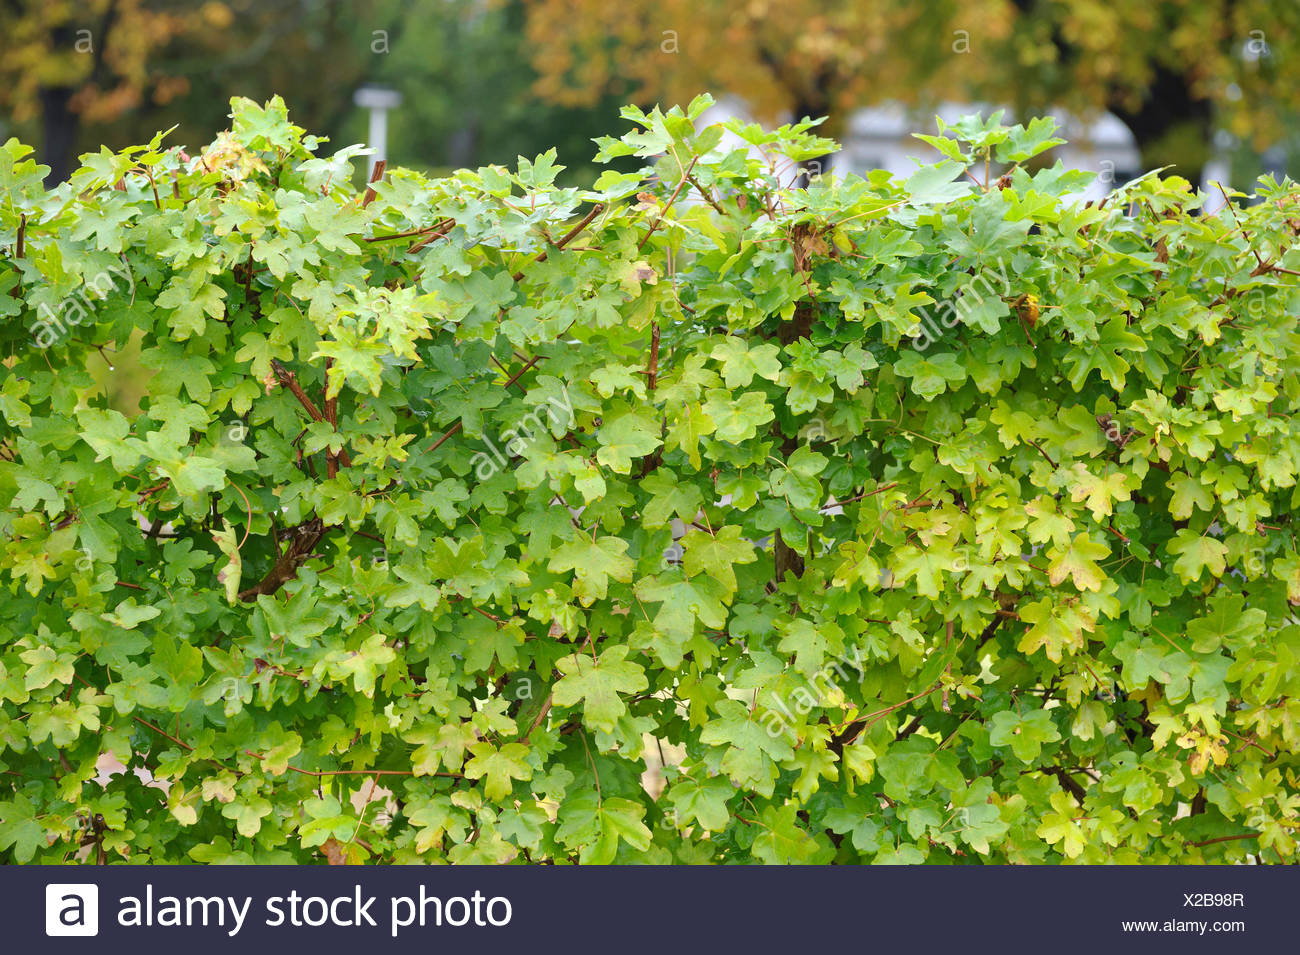 field maple, common maple (Acer campestre), maple hedge, Germany, Thueringen - Stock Image